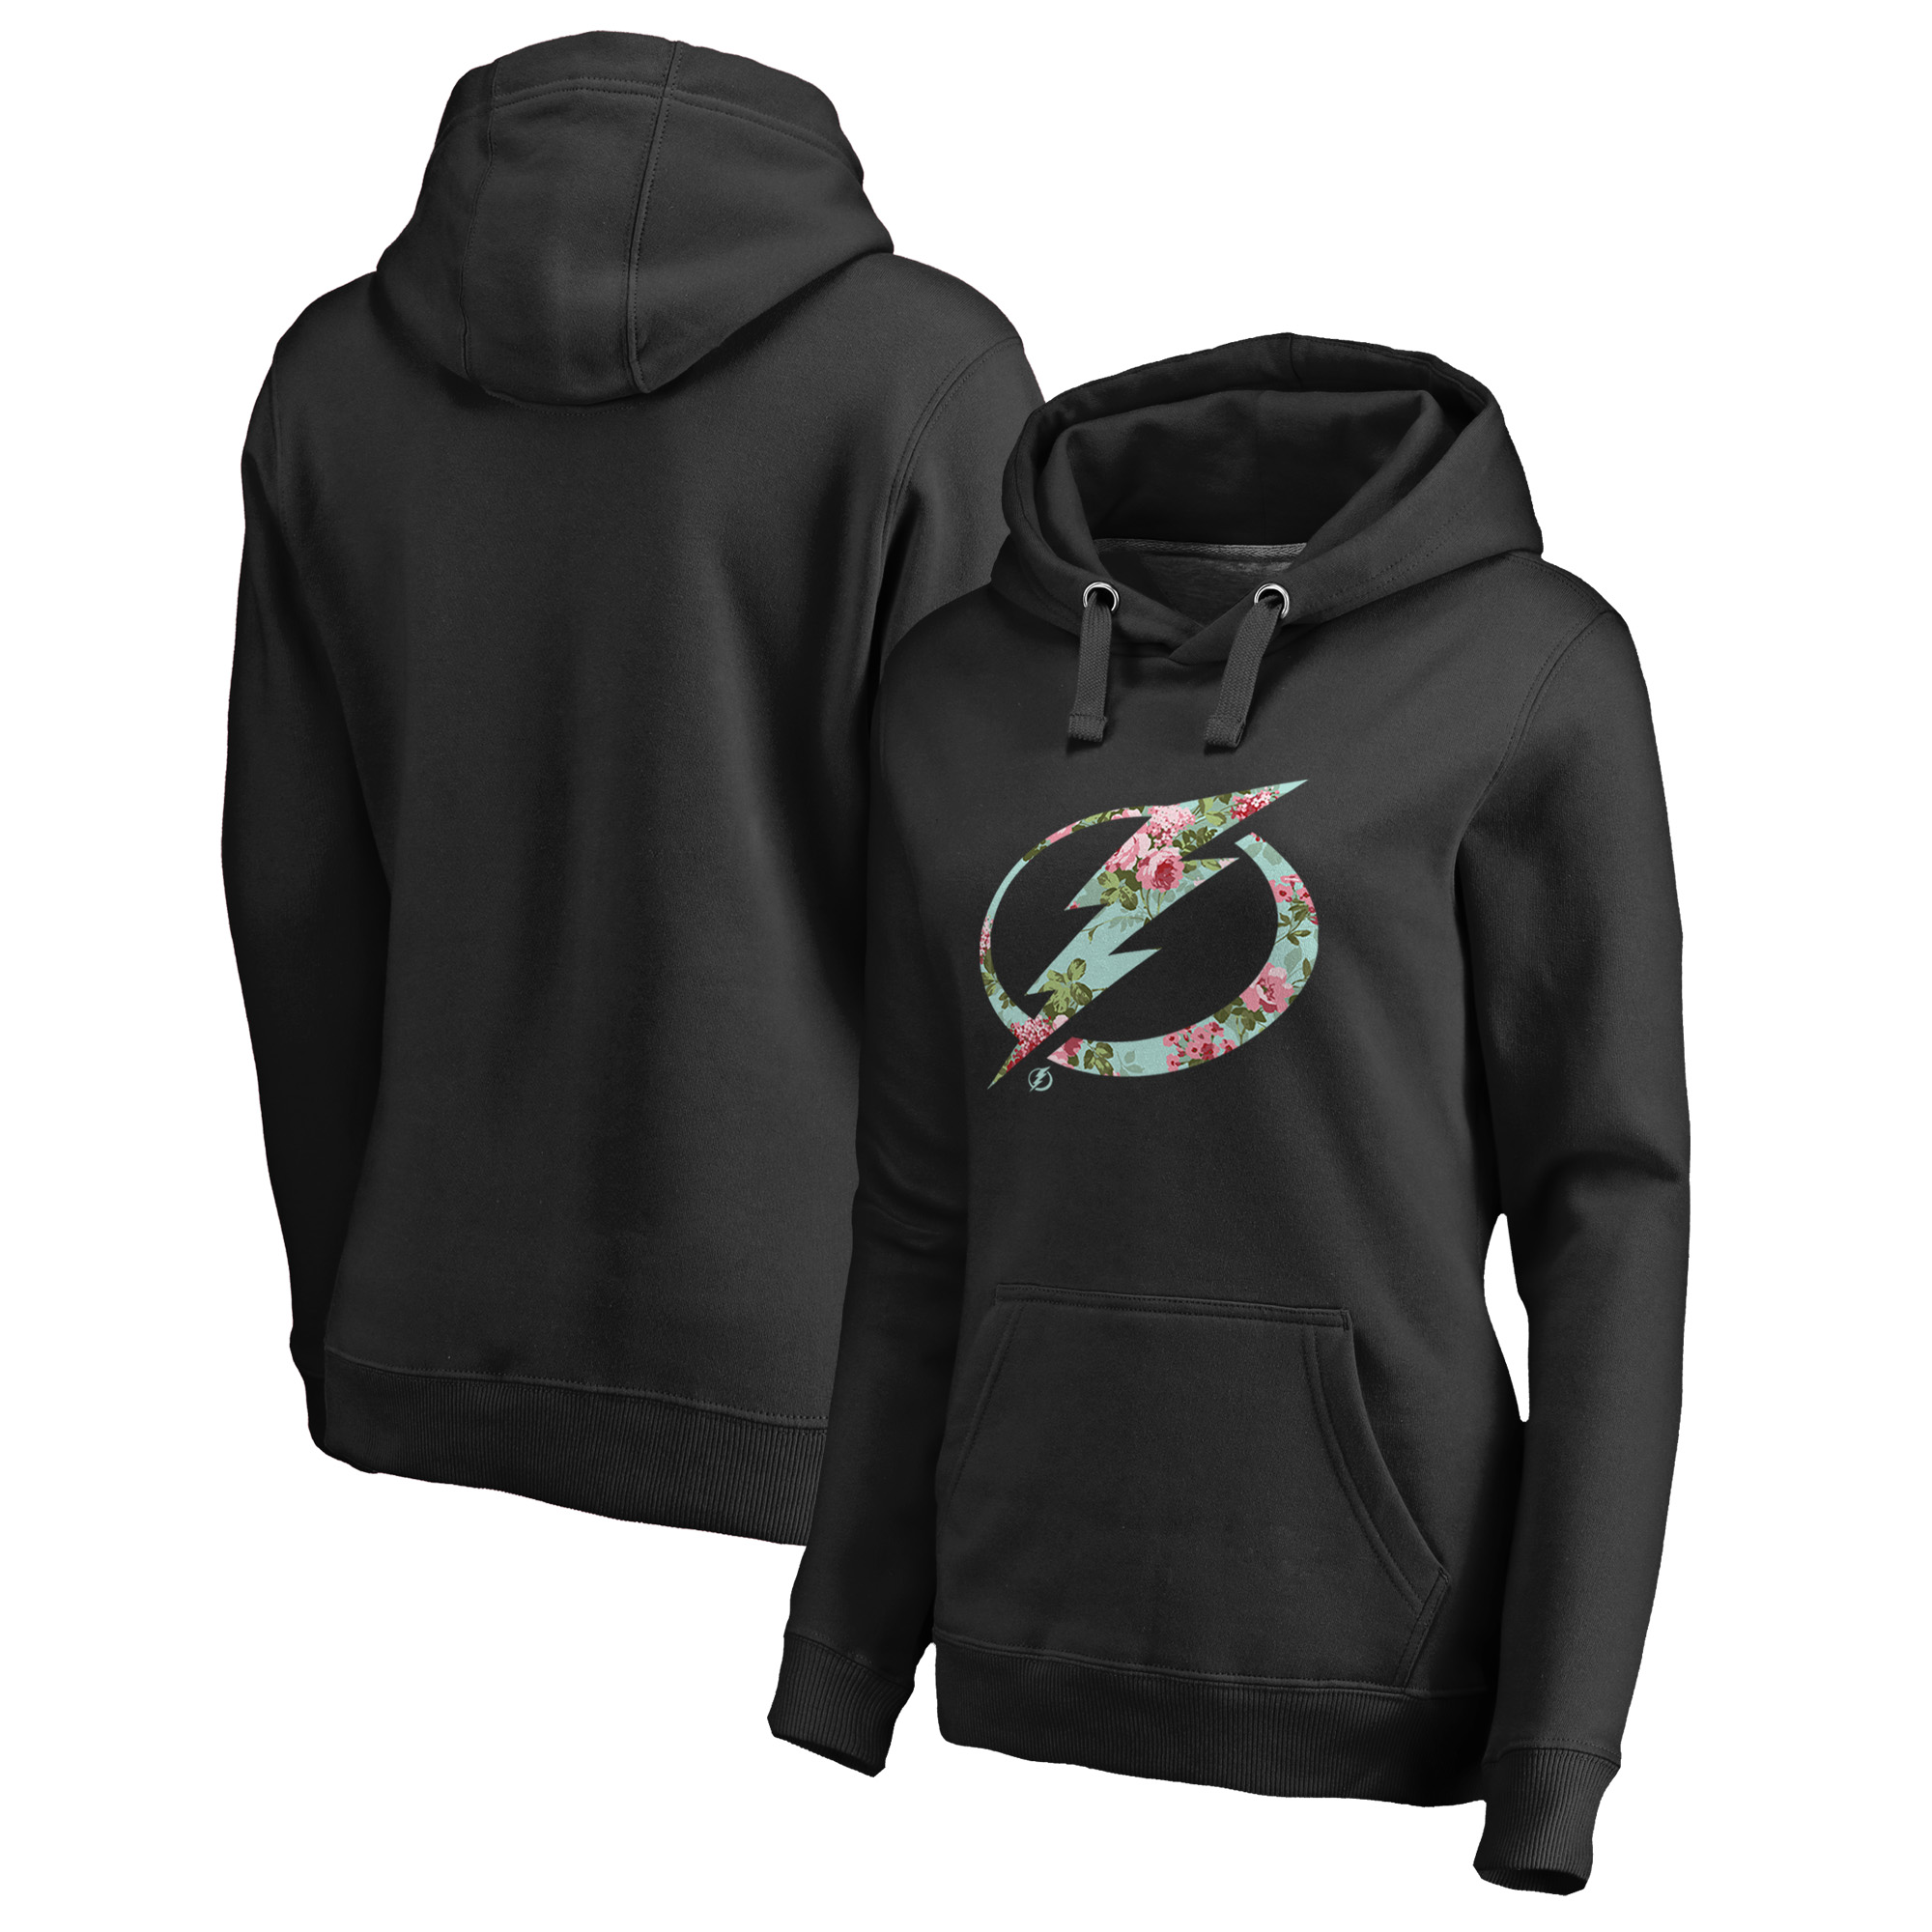 Tampa Bay Lightning Fanatics Branded Women's Lovely Pullover Hoodie - Black